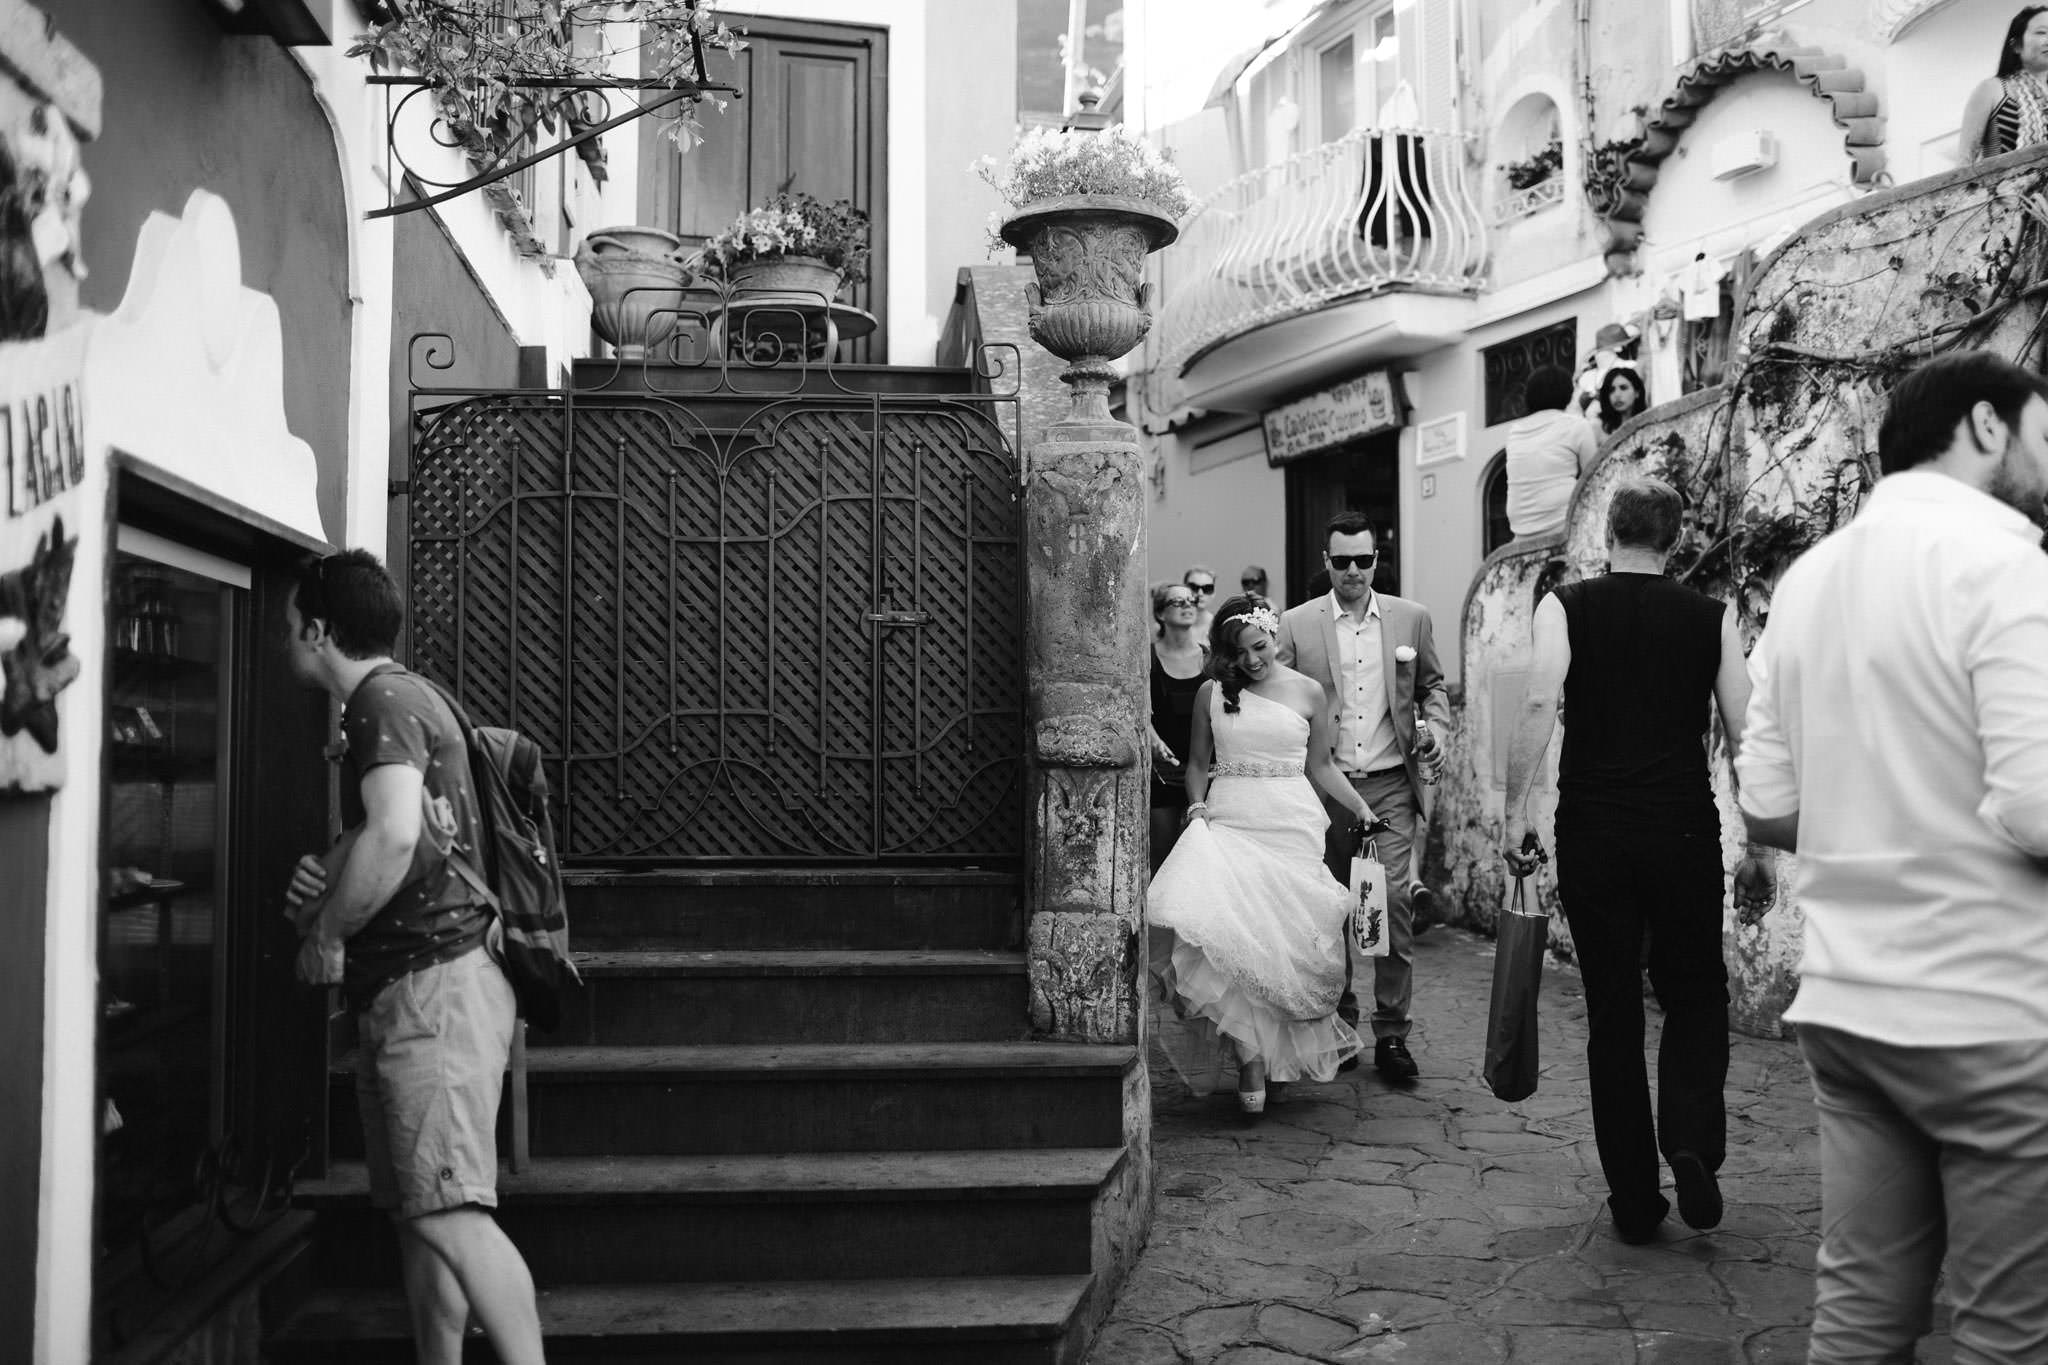 positano-wedding-photographer-097